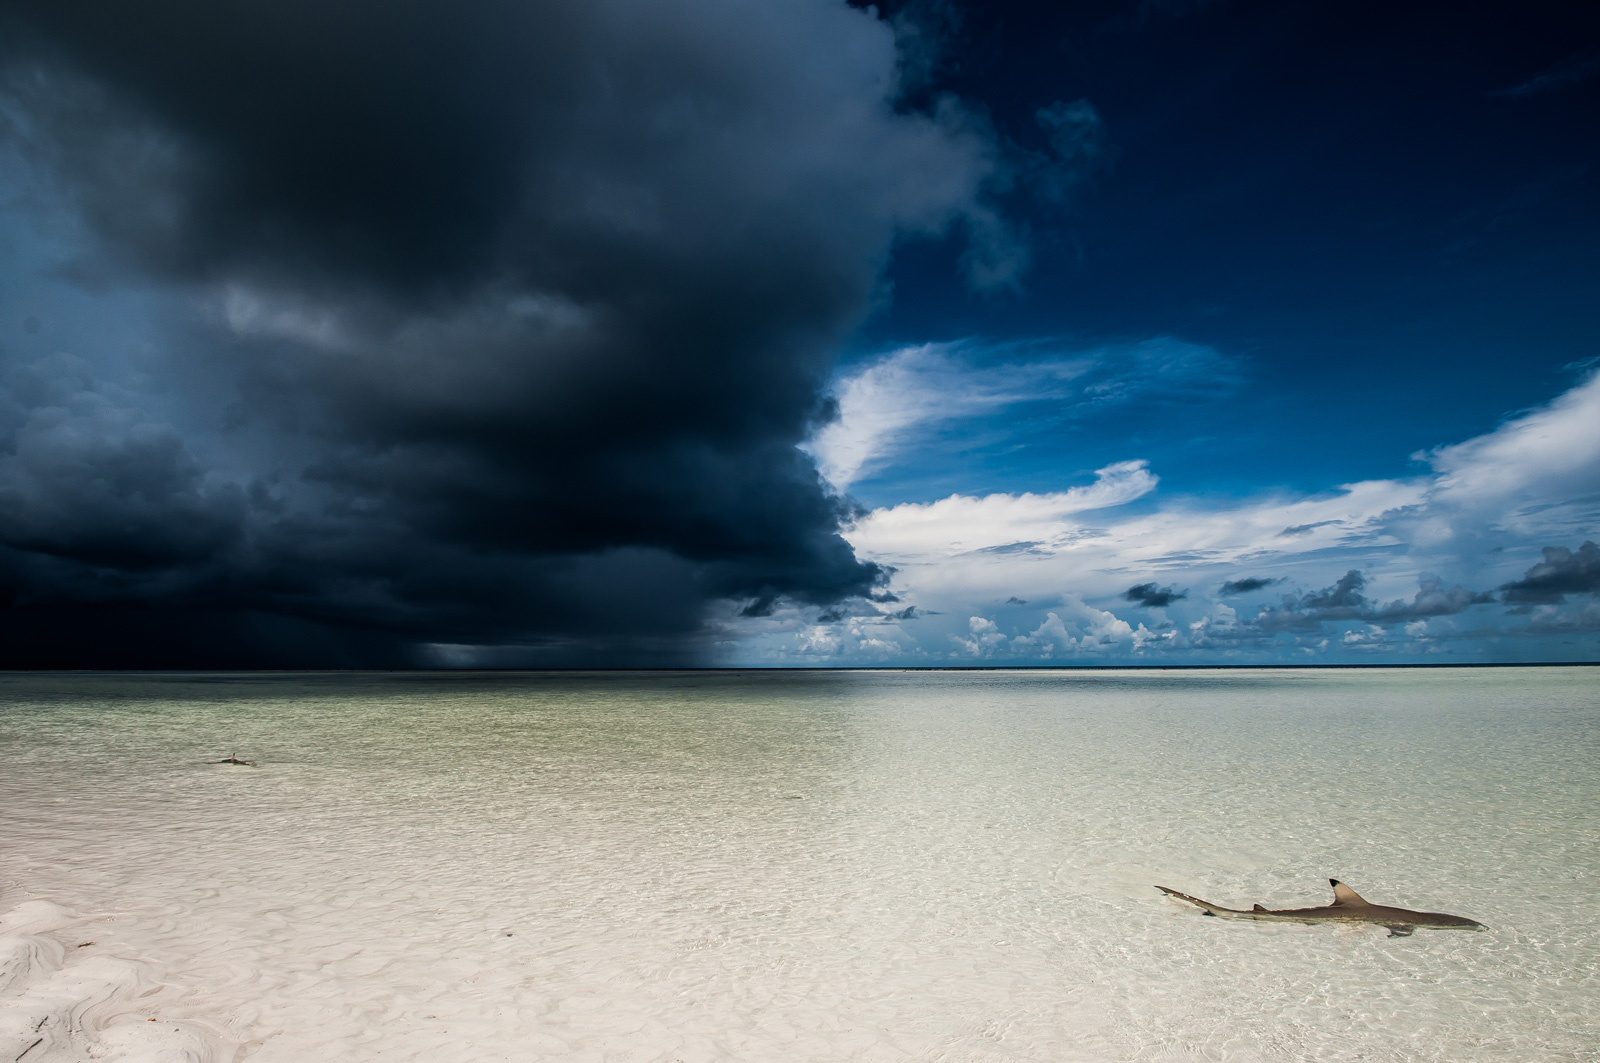 A blacktip shark cruises the lagoon as a storm approaches in Aldabra Atoll, Seychelles ©Adam Mitchell